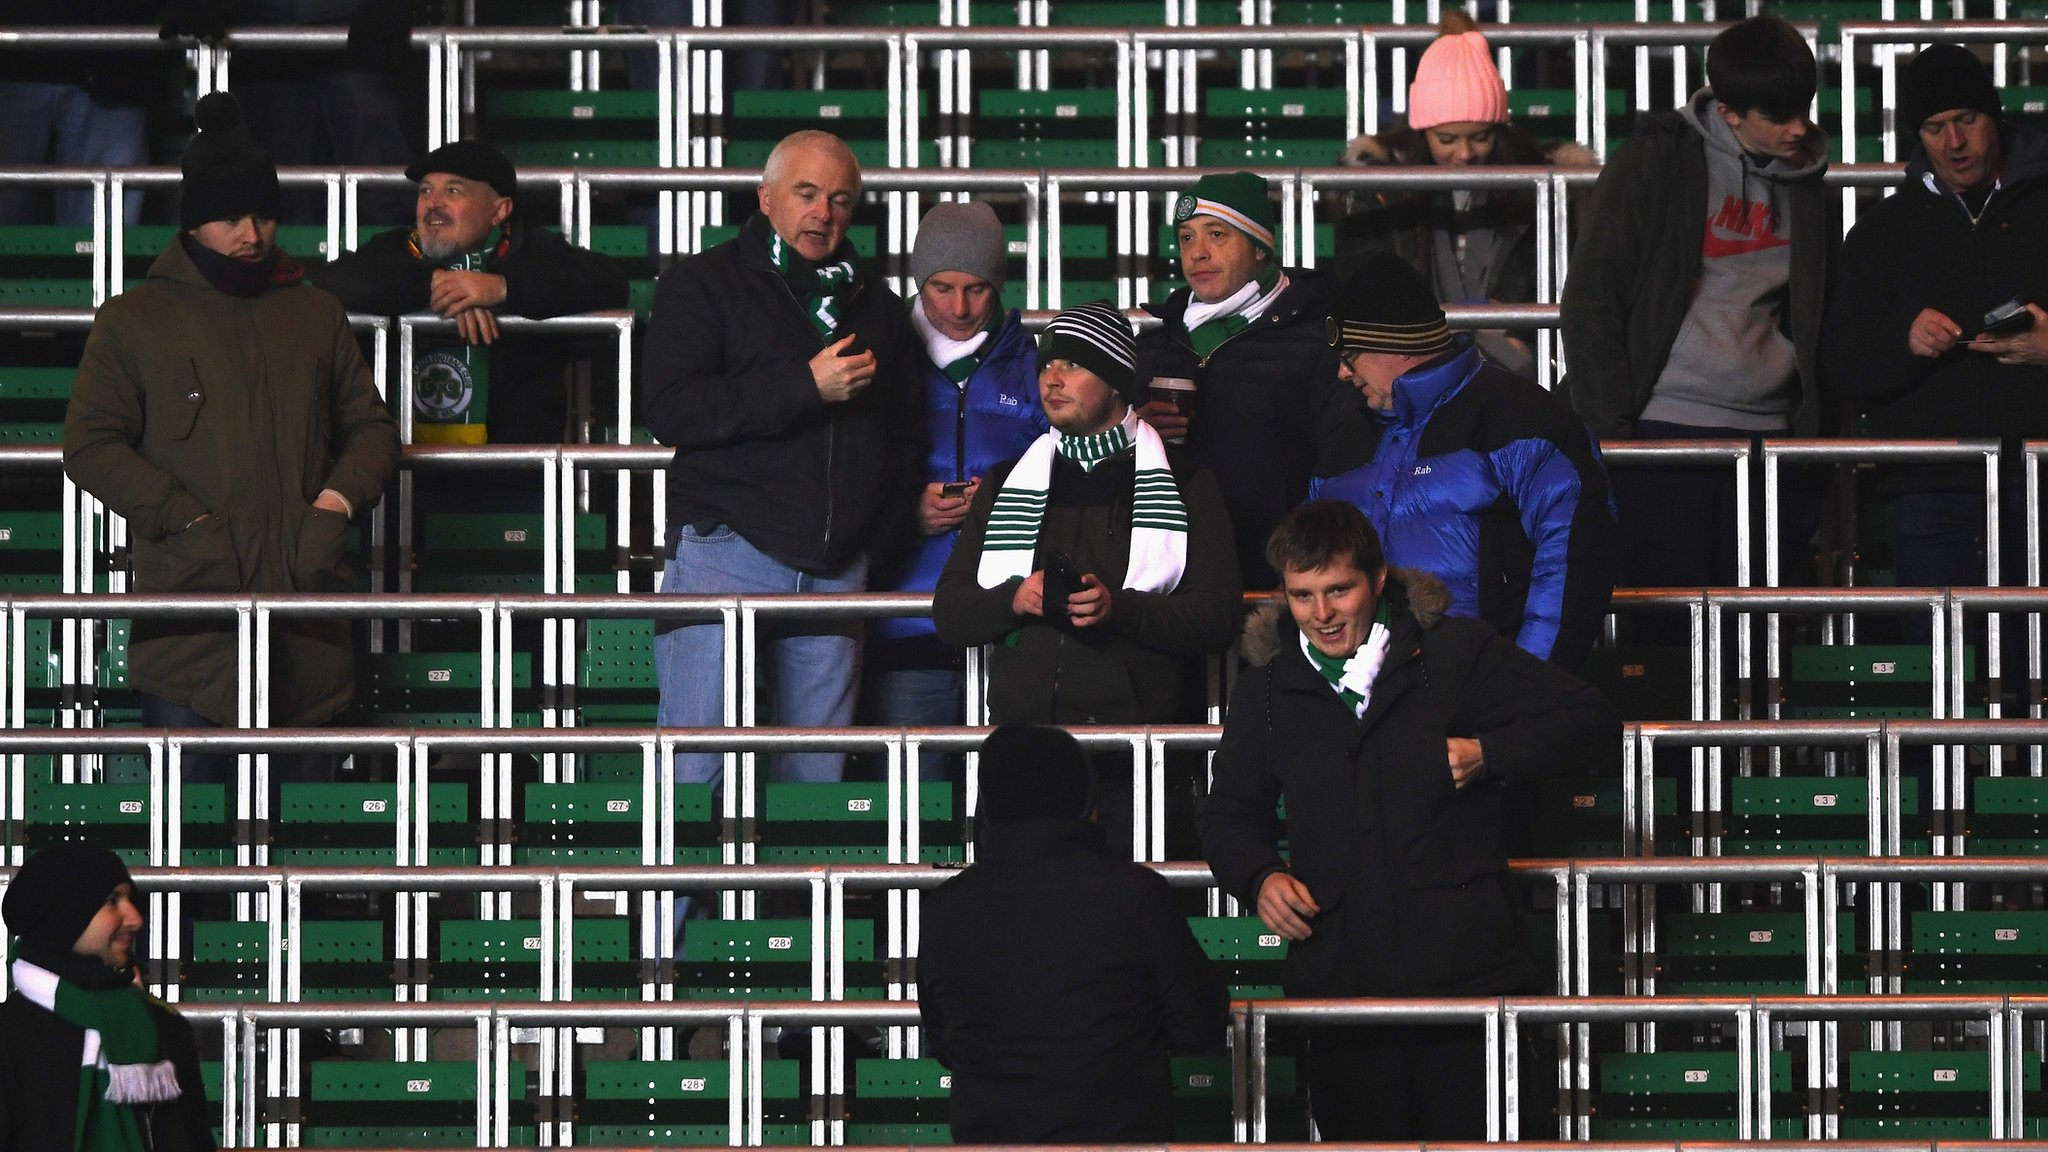 Safe standing: Government remains 'unconvinced' by case